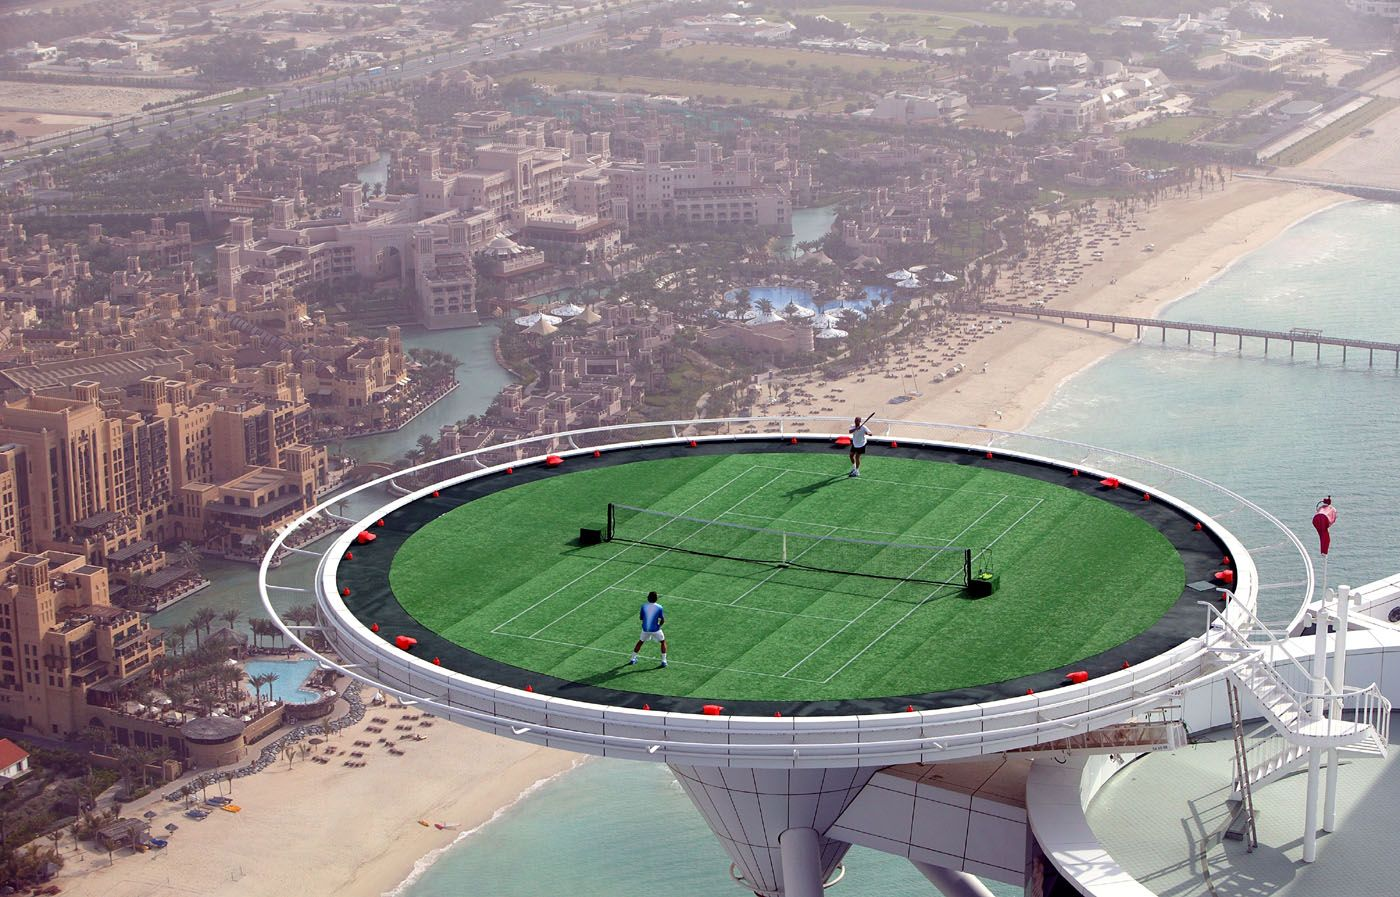 Agassi vs Federer in Dubai